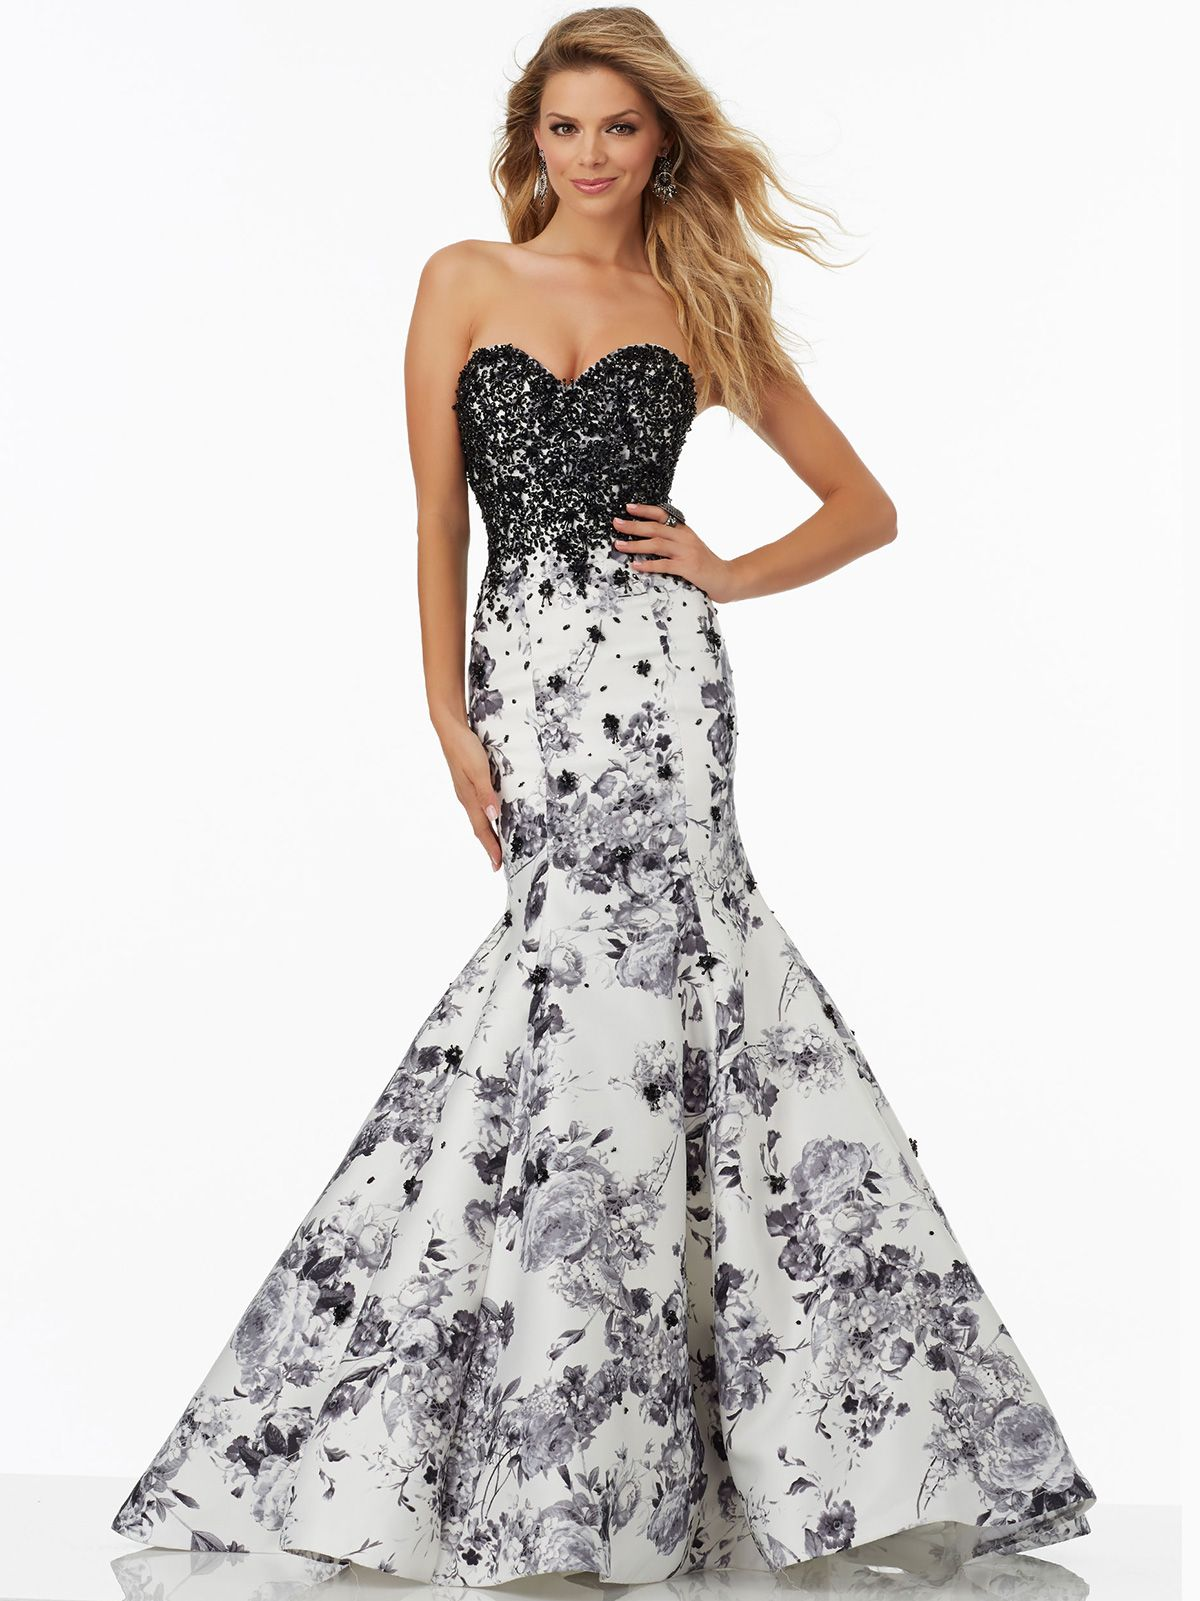 Morilee Com Black And White Gowns Mori Lee 99150 Beaded Bodice Prom Gown Dressprom Net Mori Lee Prom Dresses Mermaid Prom Dresses Bodycon Prom Dresses [ 1601 x 1200 Pixel ]